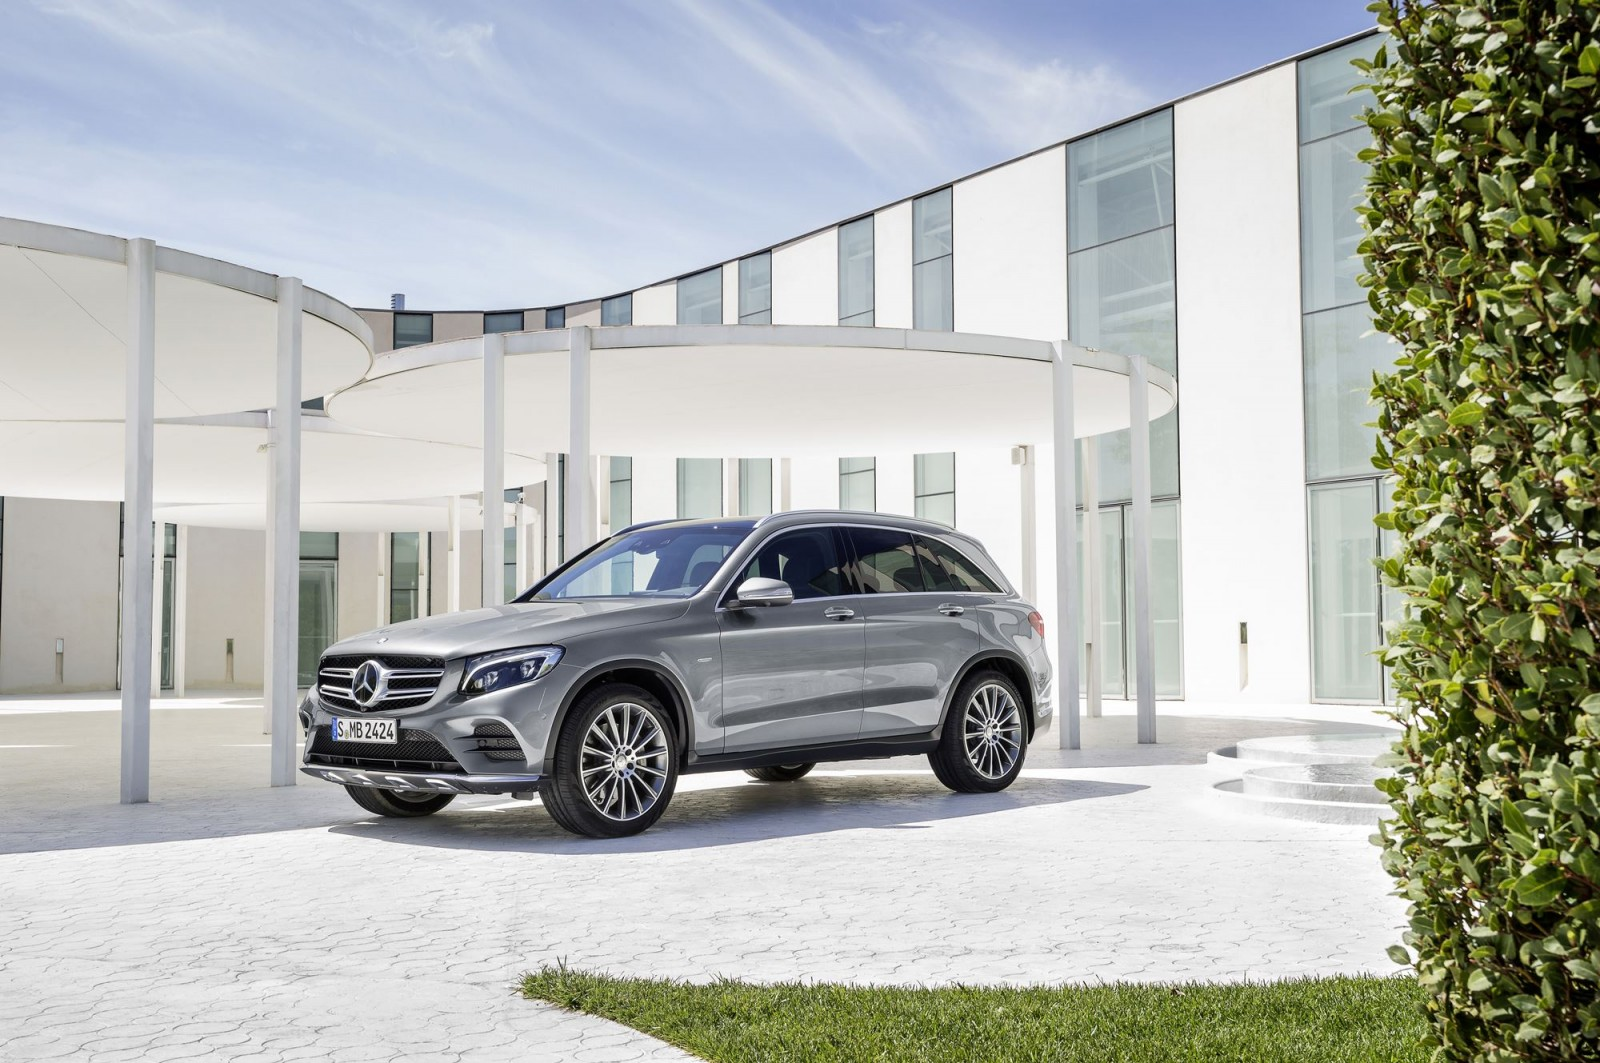 Mercedes-Benz GLC 350e 4MATIC EDITION 1 (X 253) 2015